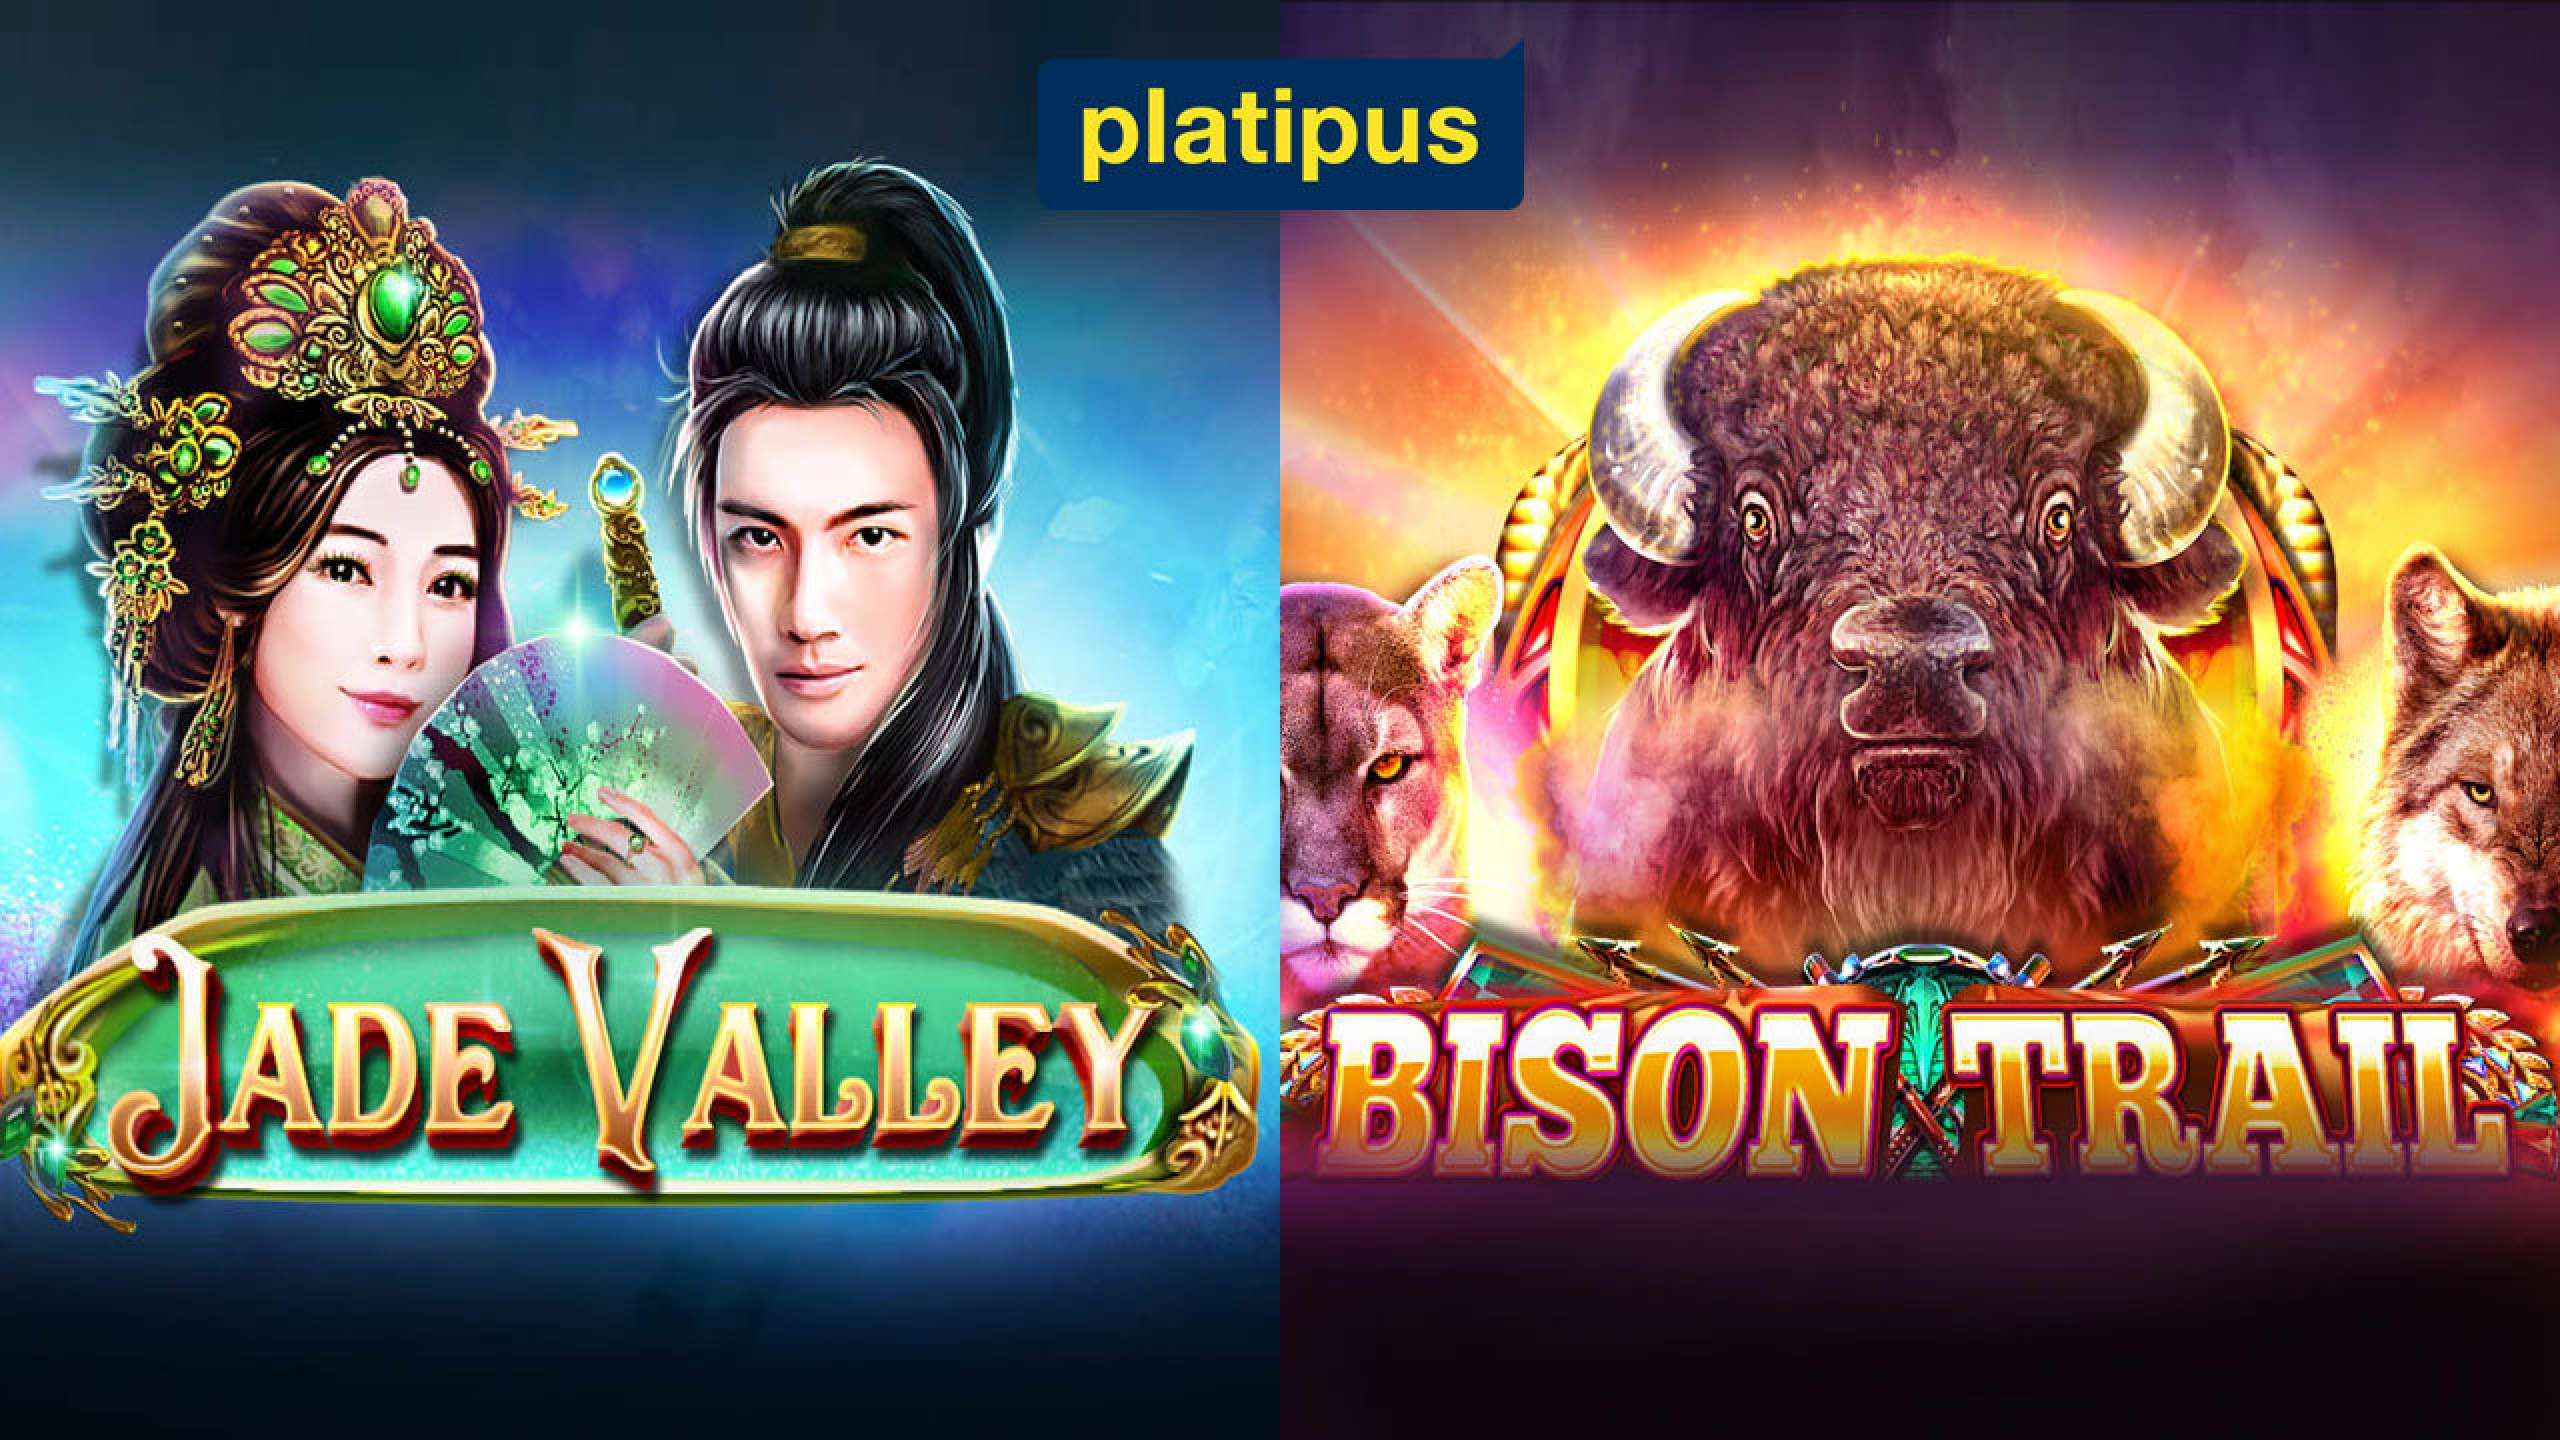 The Jade Valley Online Slot Demo Game by Platipus